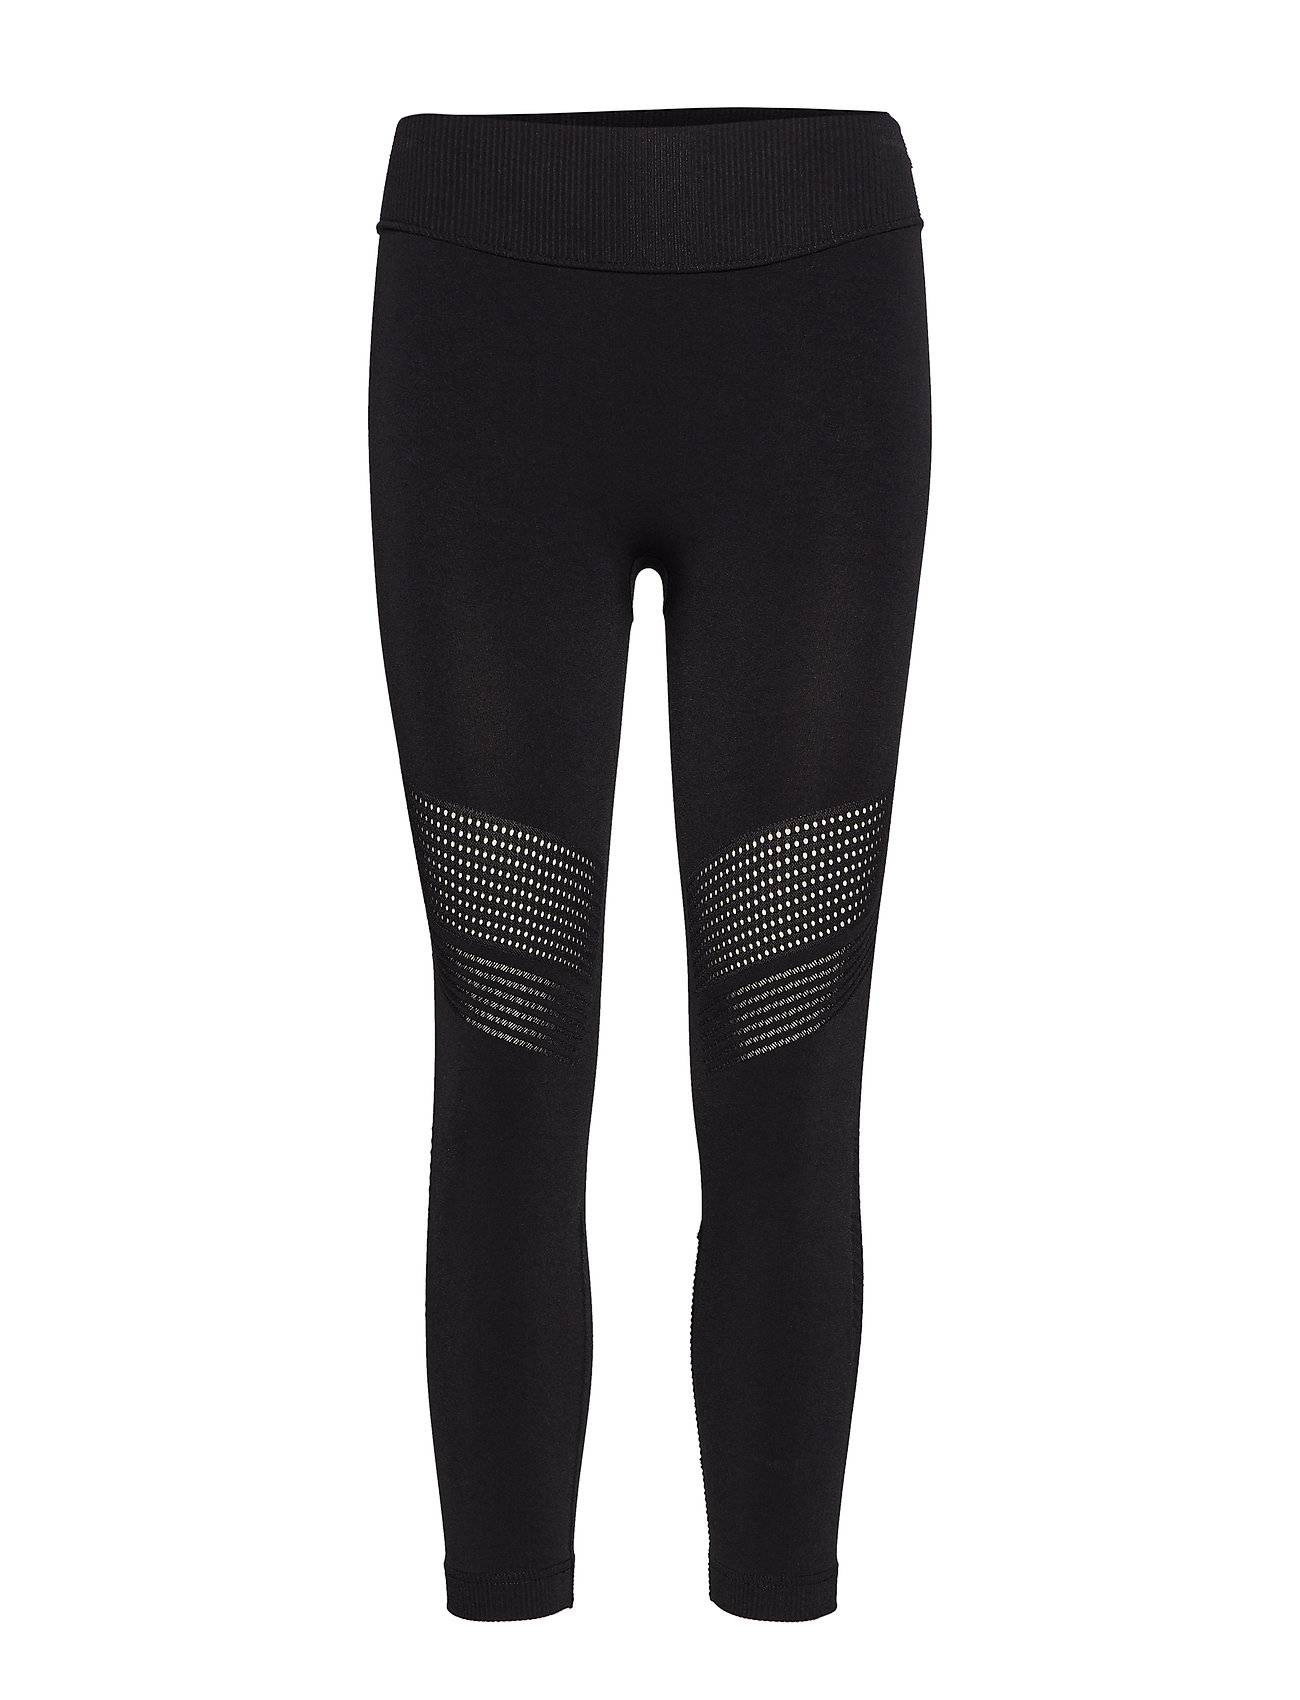 Image of Skins Dnamic Seamless Square Womens 7/8 Tights Running/training Tights Musta Skins